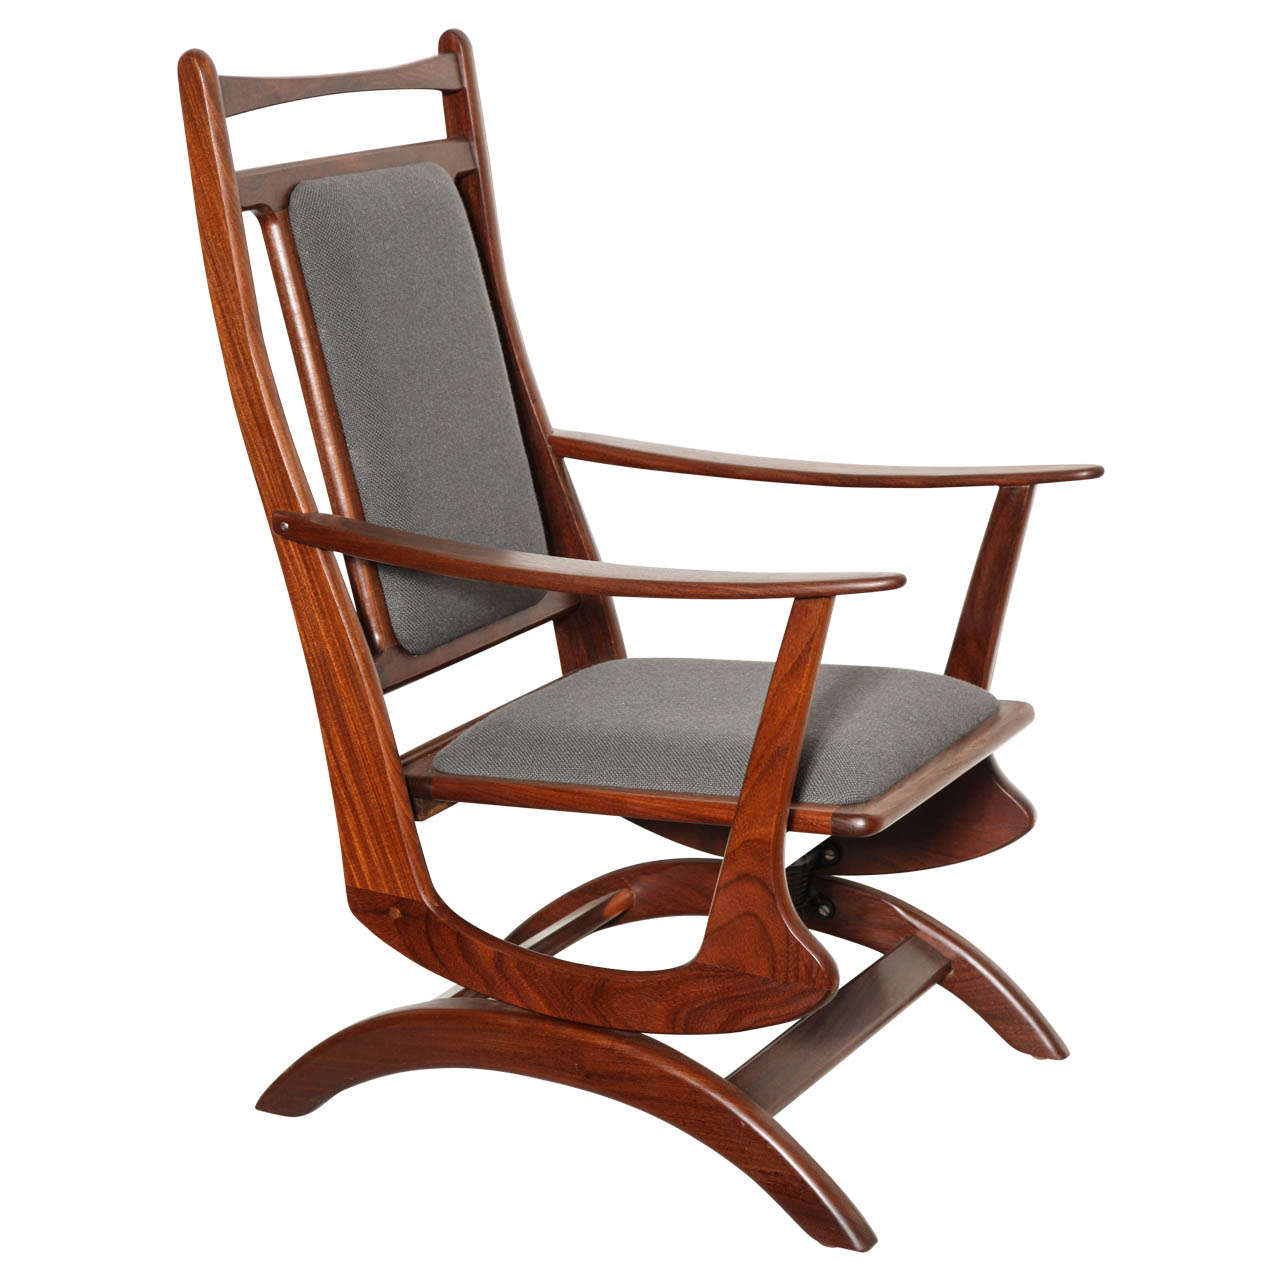 antique rocking chairs value burgundy wingback danish vintage chair at 1stdibs